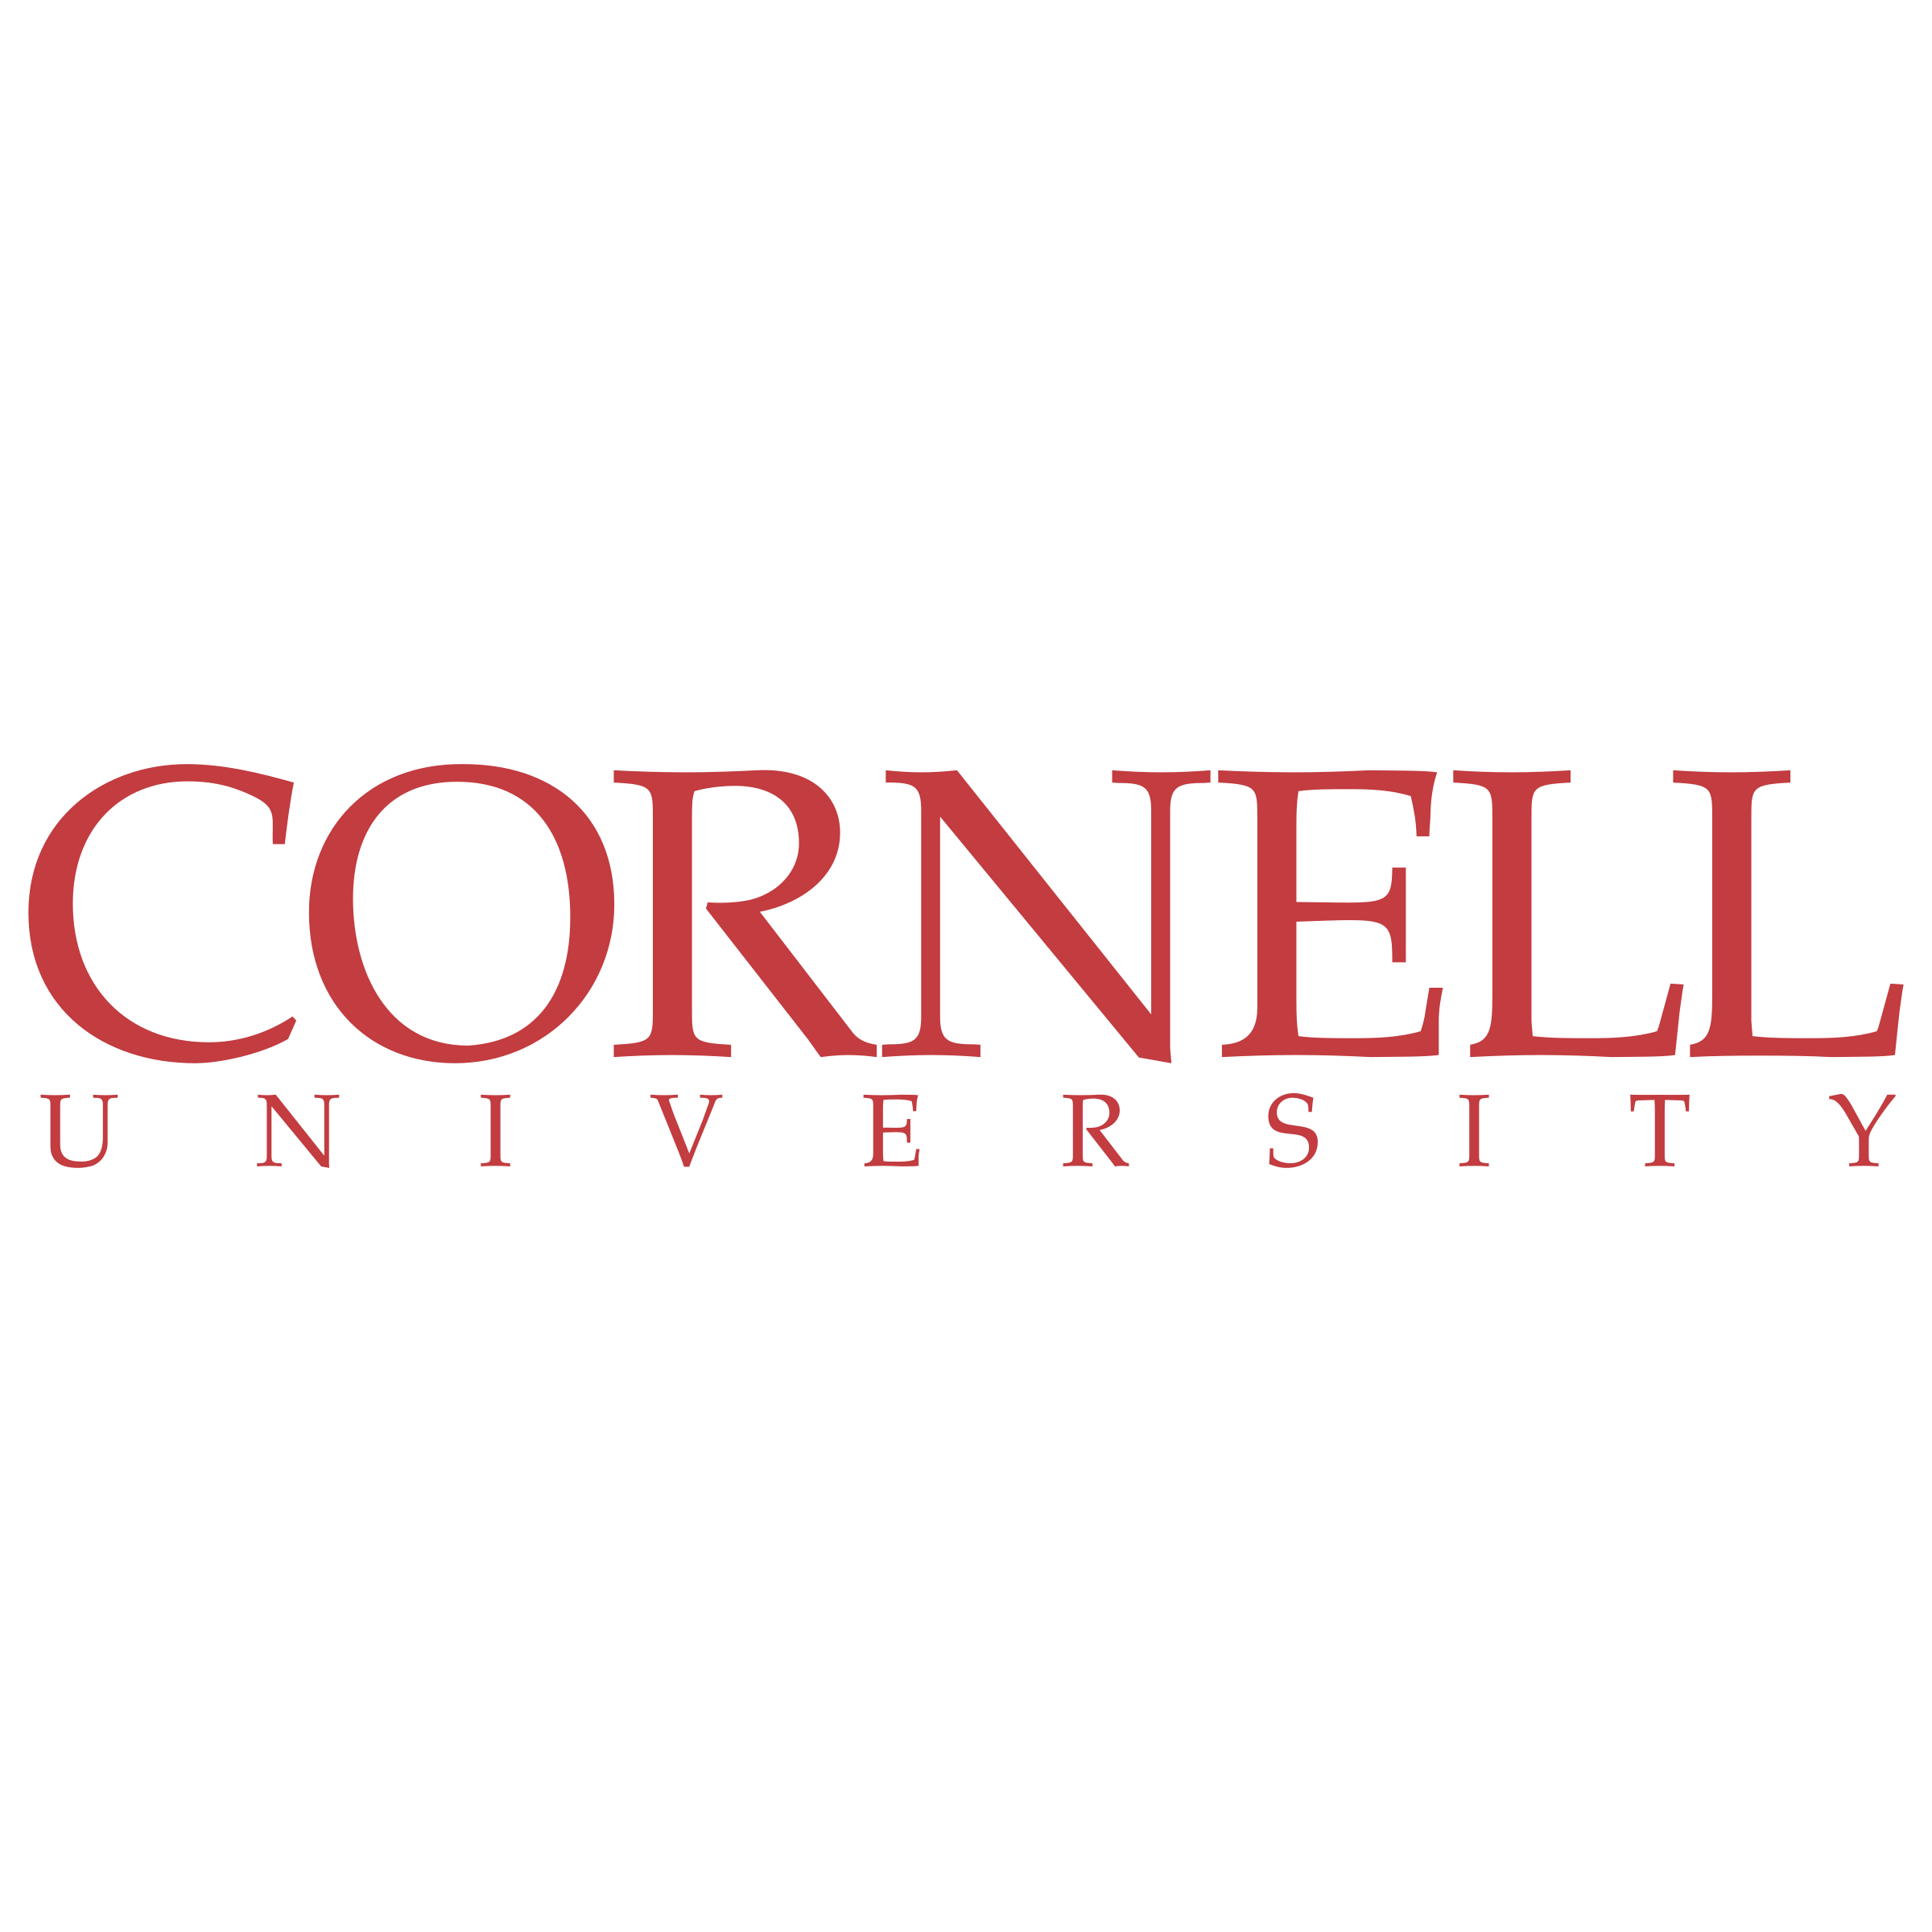 Image result for cornell university transparent logo